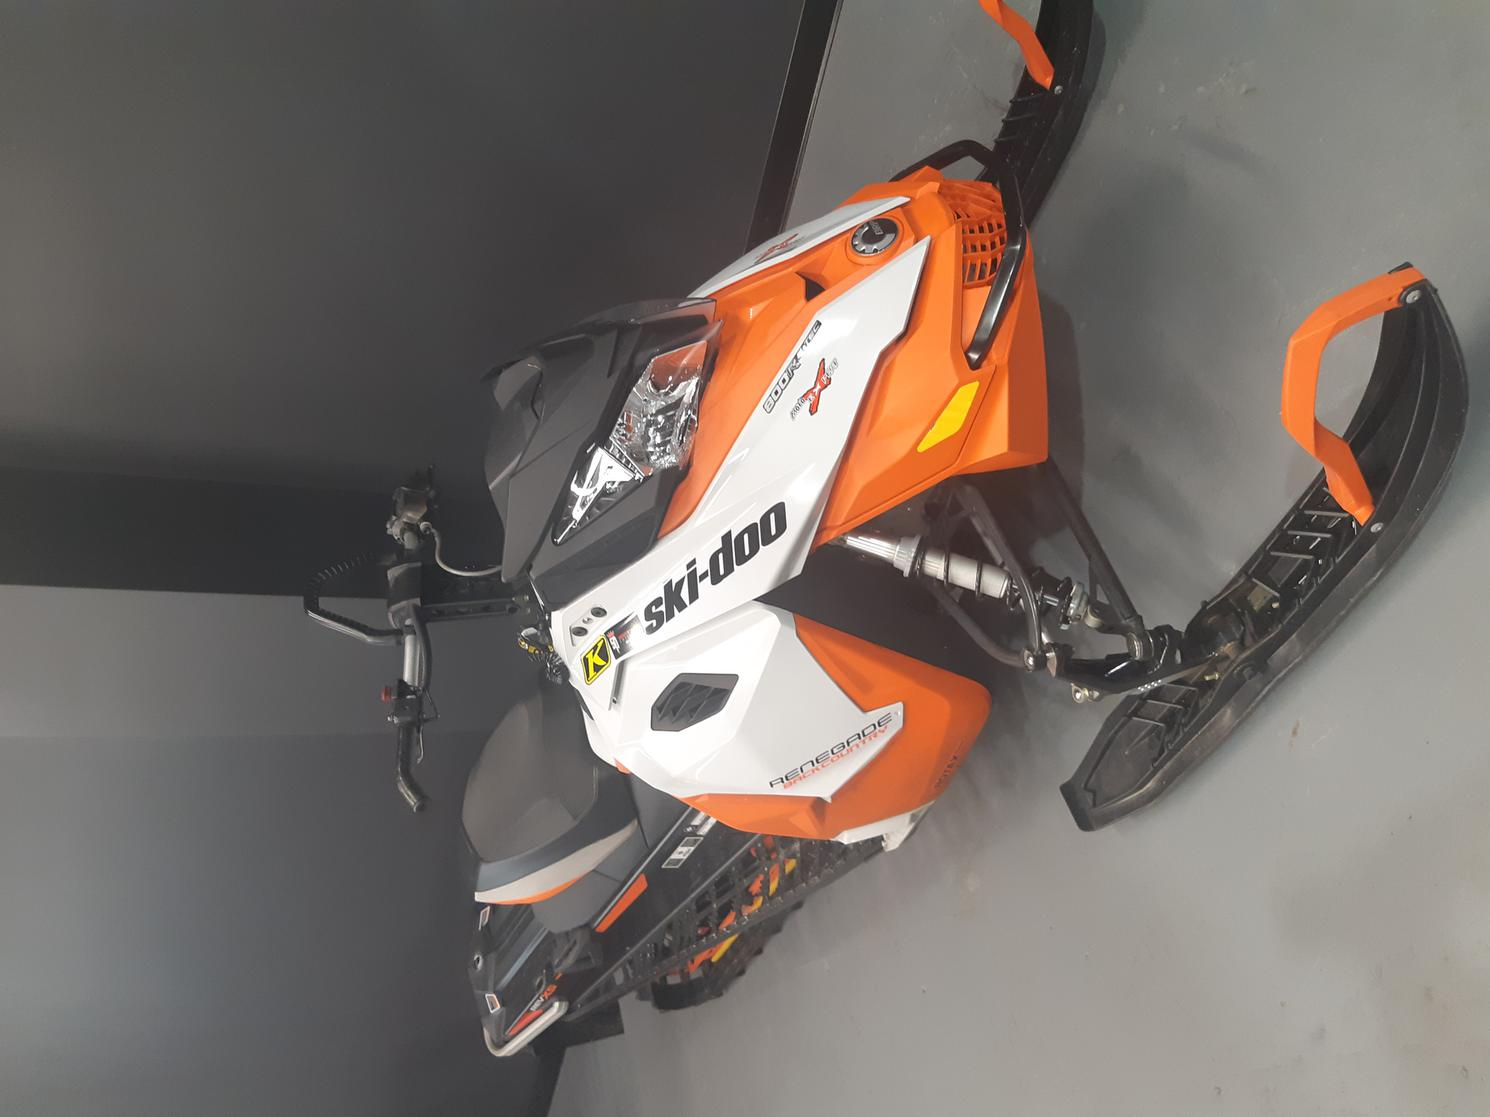 Bombardier RENEGADE BACK COUNTRY 800 ETEC 2015